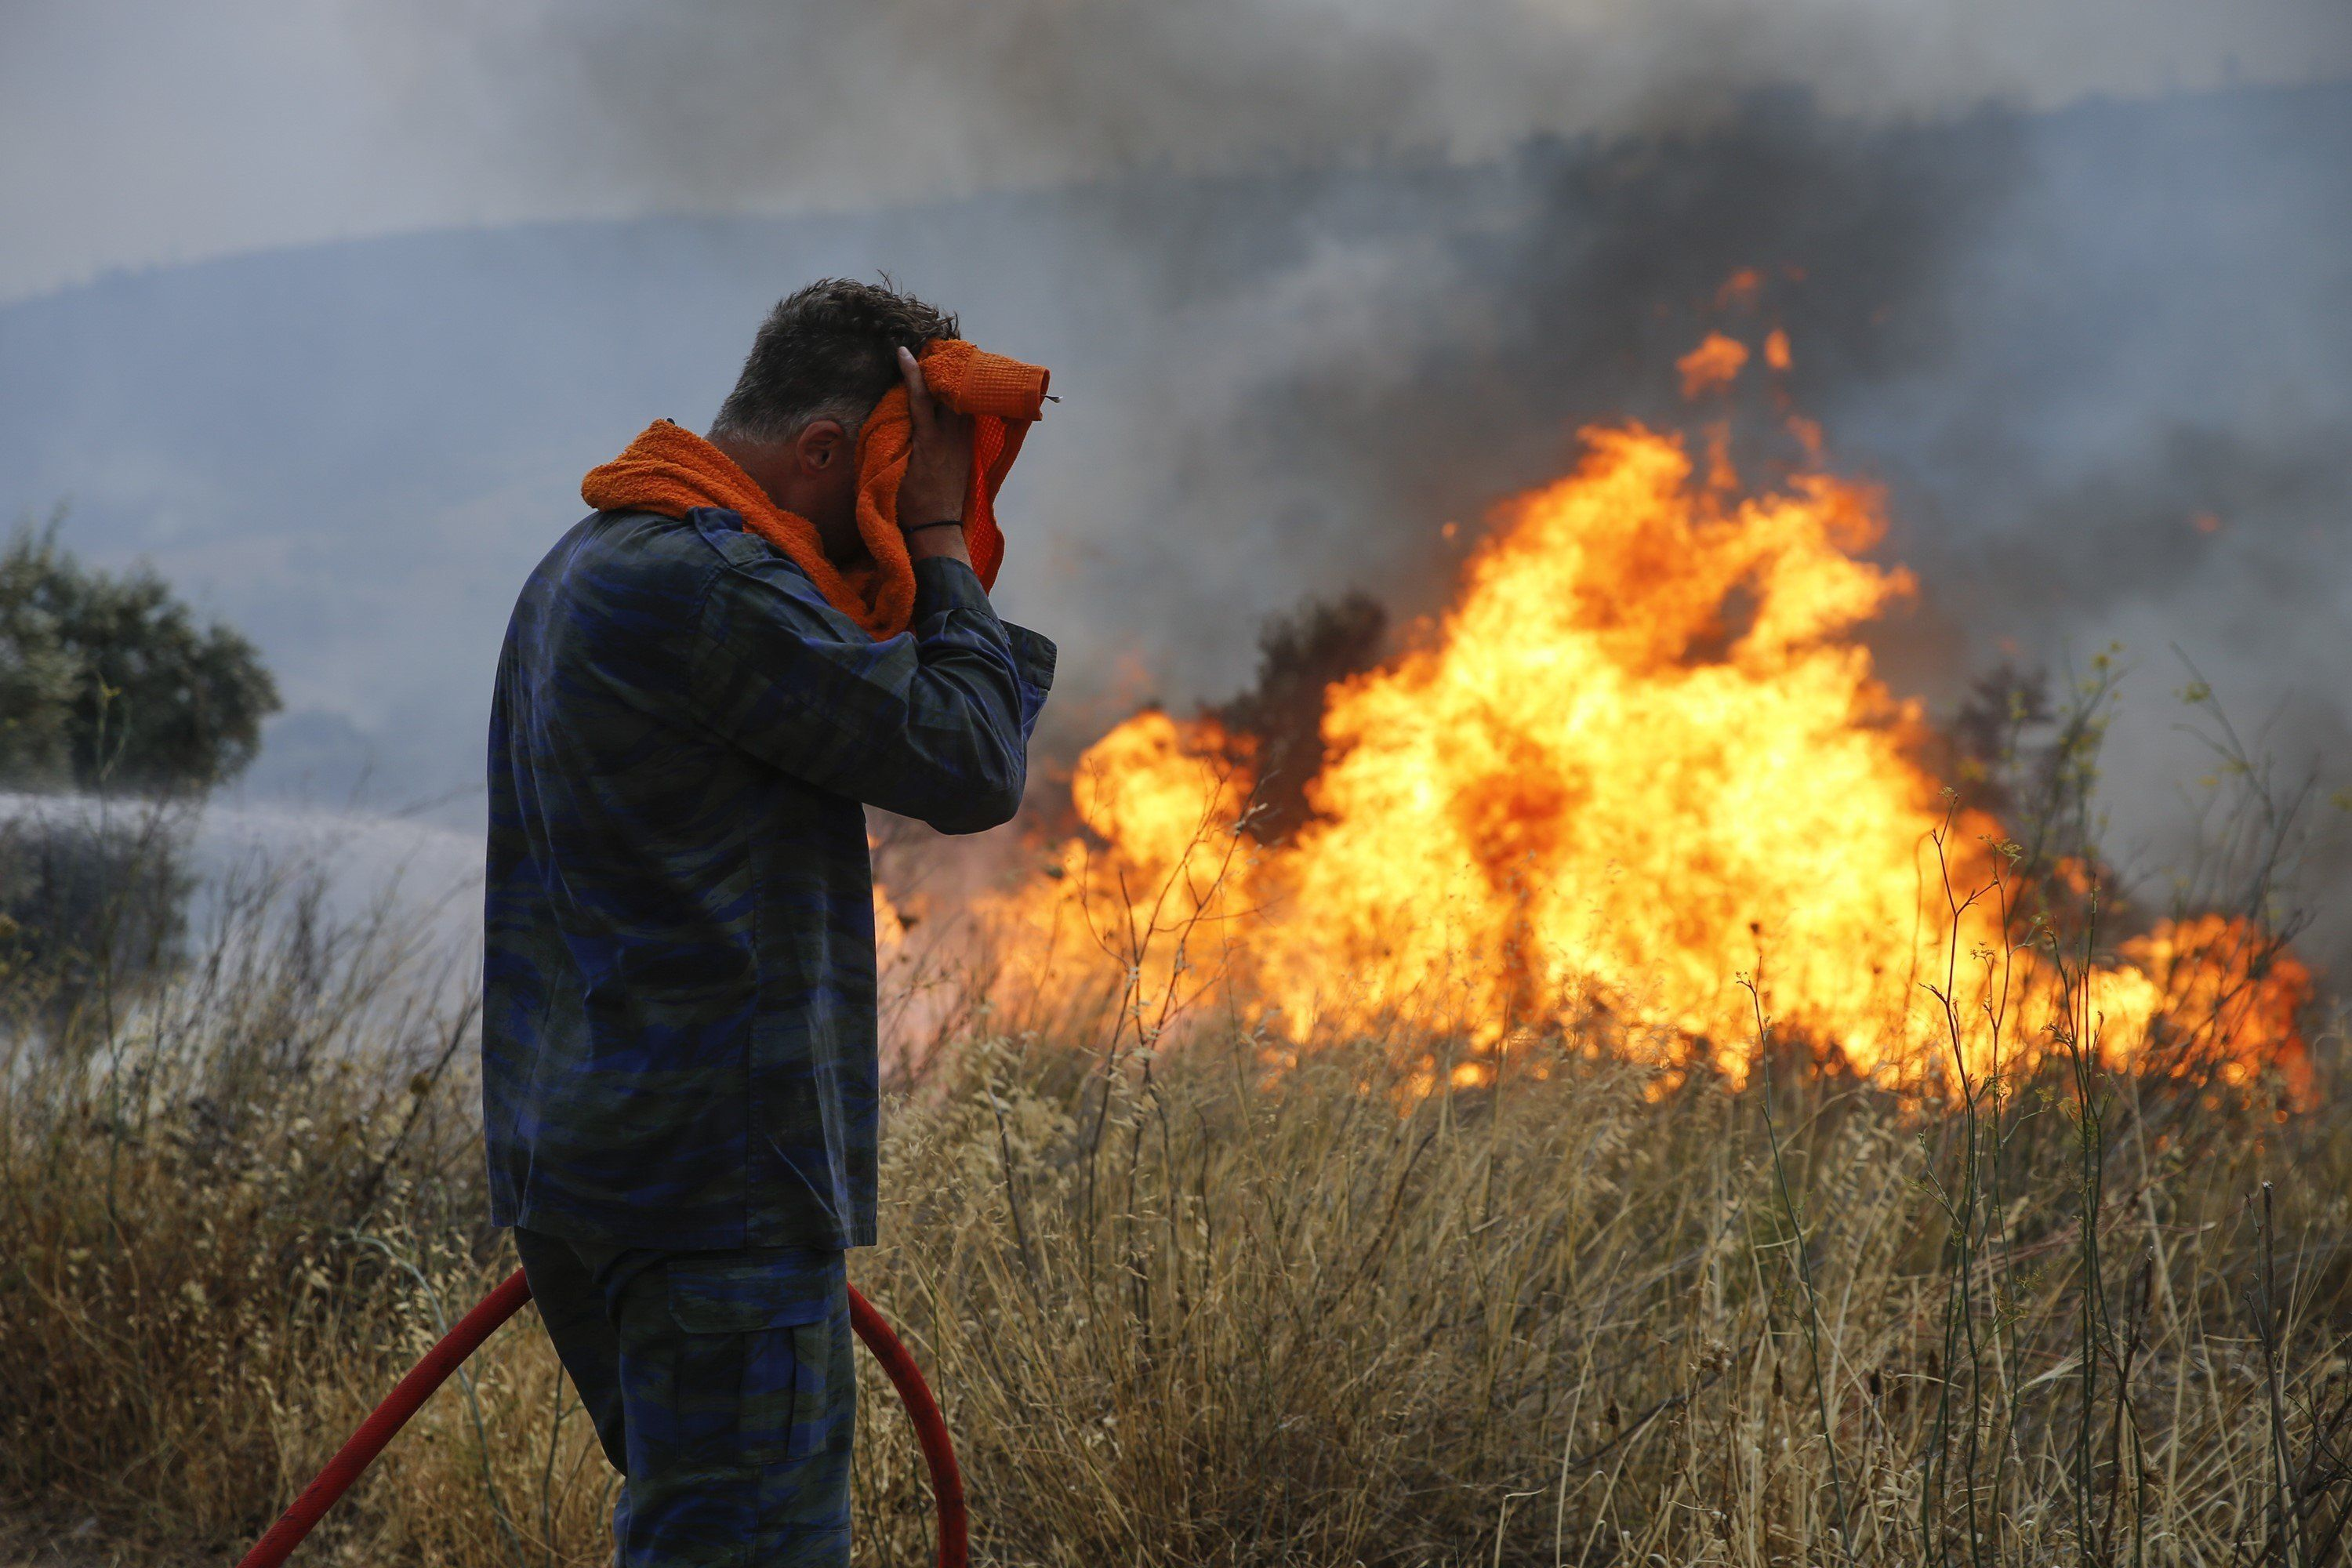 ATHENS, GREECE - JULY 23: Firefighters and volunteers try to extinguish the fire broke out  at forested land in Penteli town of Athens, Greece on July 23, 2018. (Photo by Ayhan Mehmet/Anadolu Agency/Getty Images)